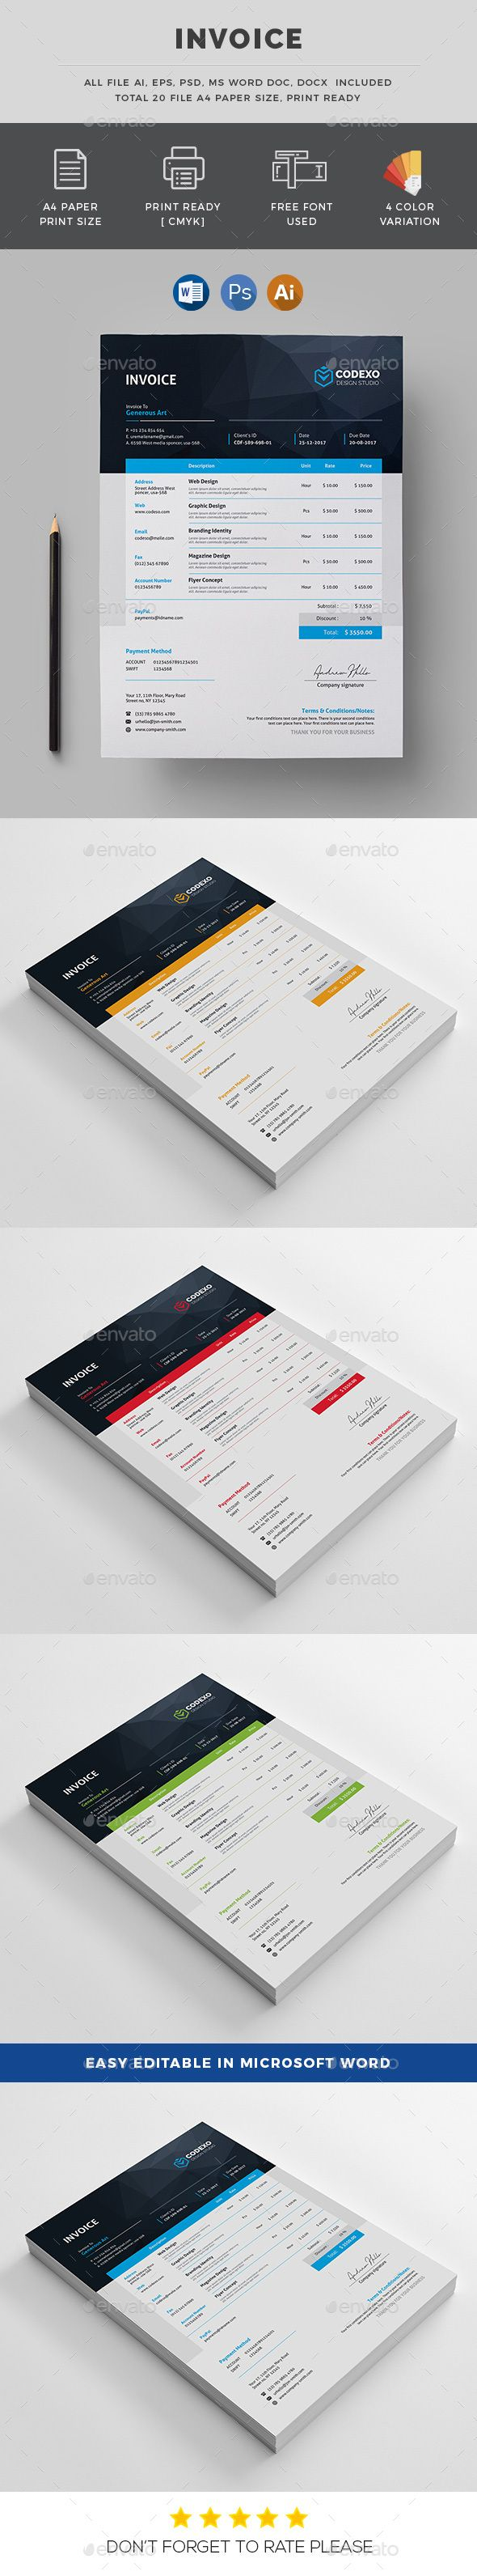 Business Letter Templates Free Download%0A Invoice  Stationery Print Templates Download here   https   graphicriver net